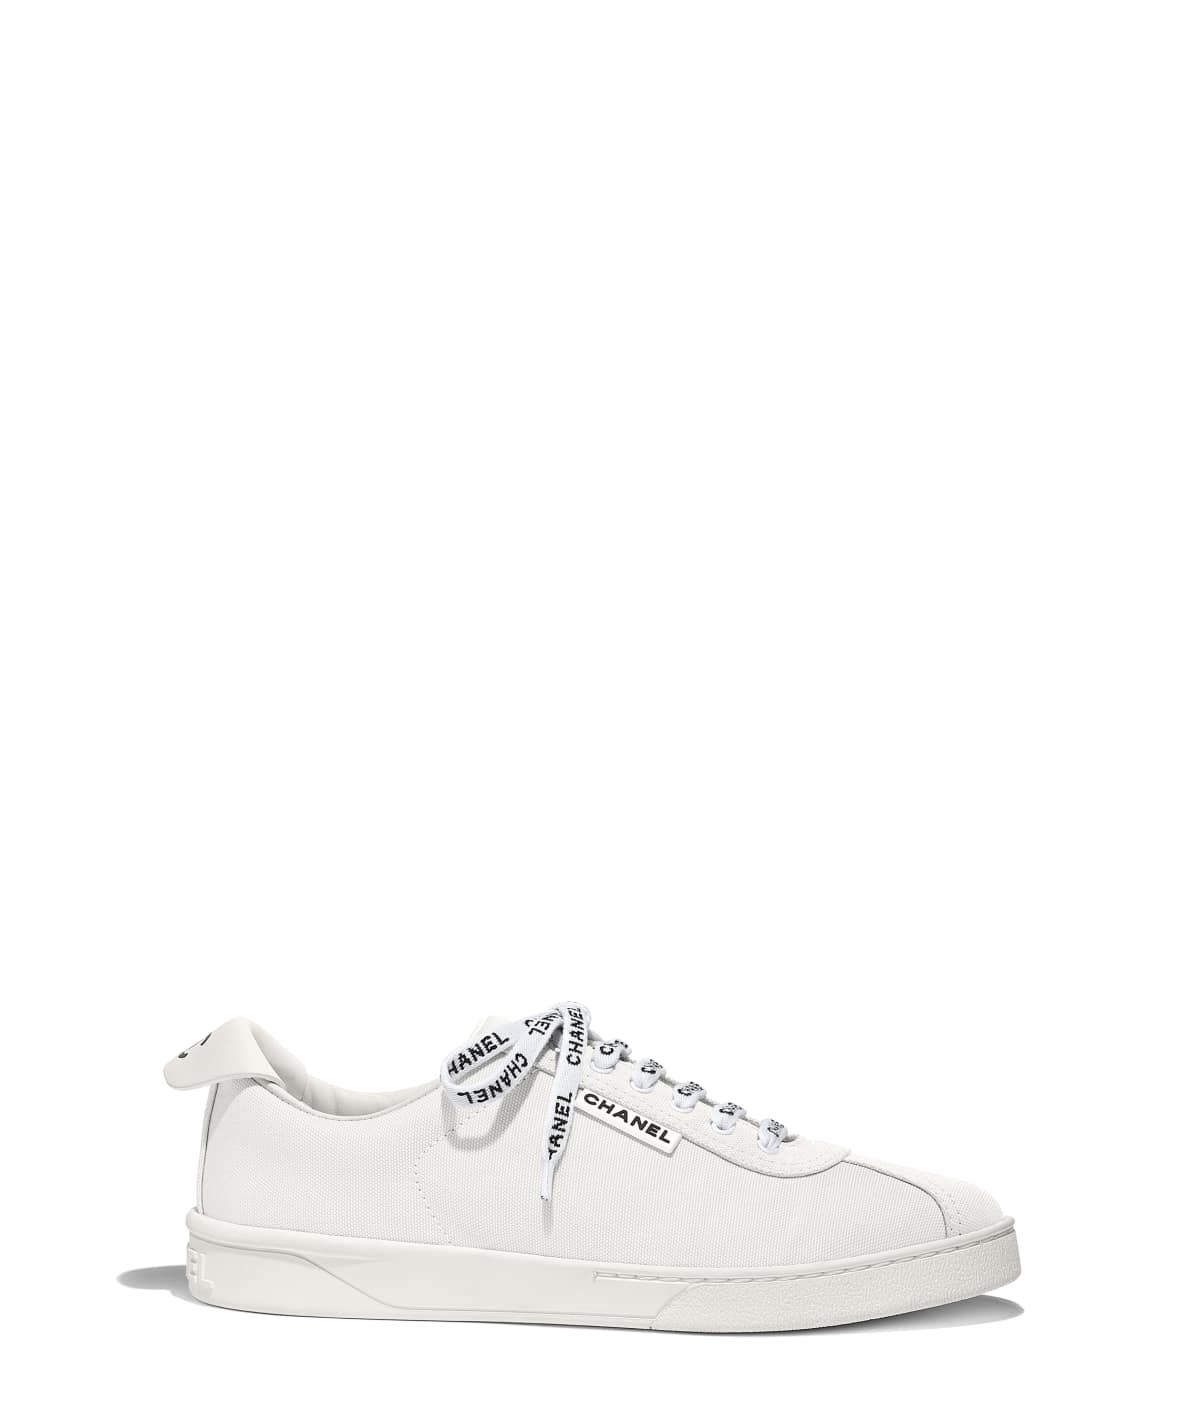 61b6007ba7f Sapatos of the Cruise 2018 19 CHANEL Fashion collection   Tênis ...